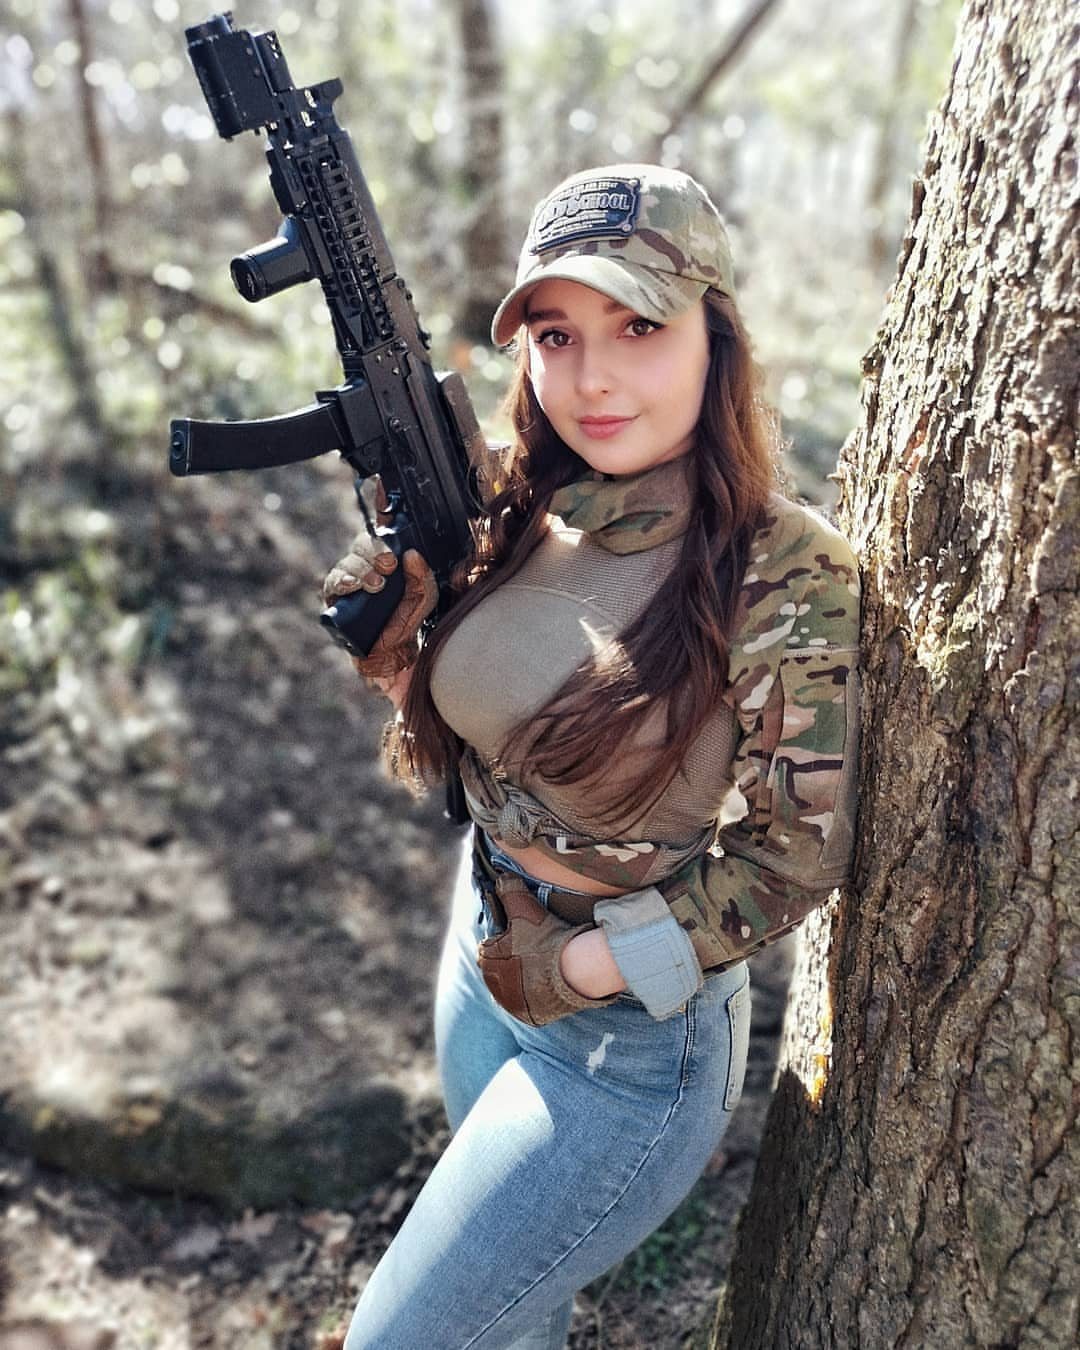 Amazing WTF Facts: Hot Military Girls With Guns